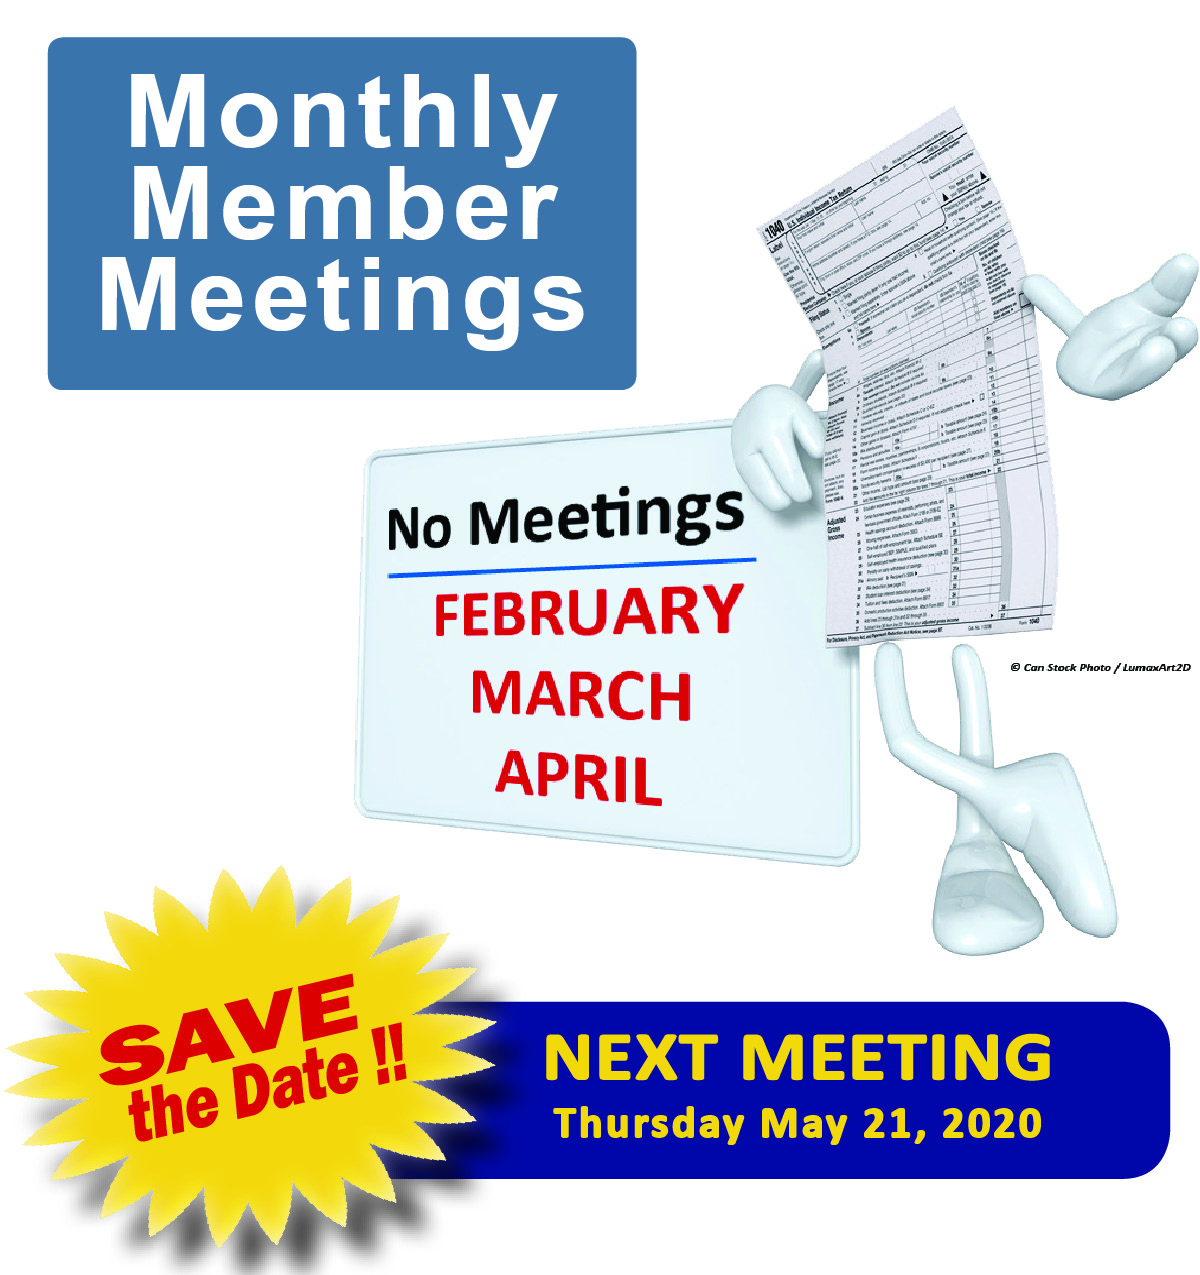 No Member Meetings in Feb-March-April